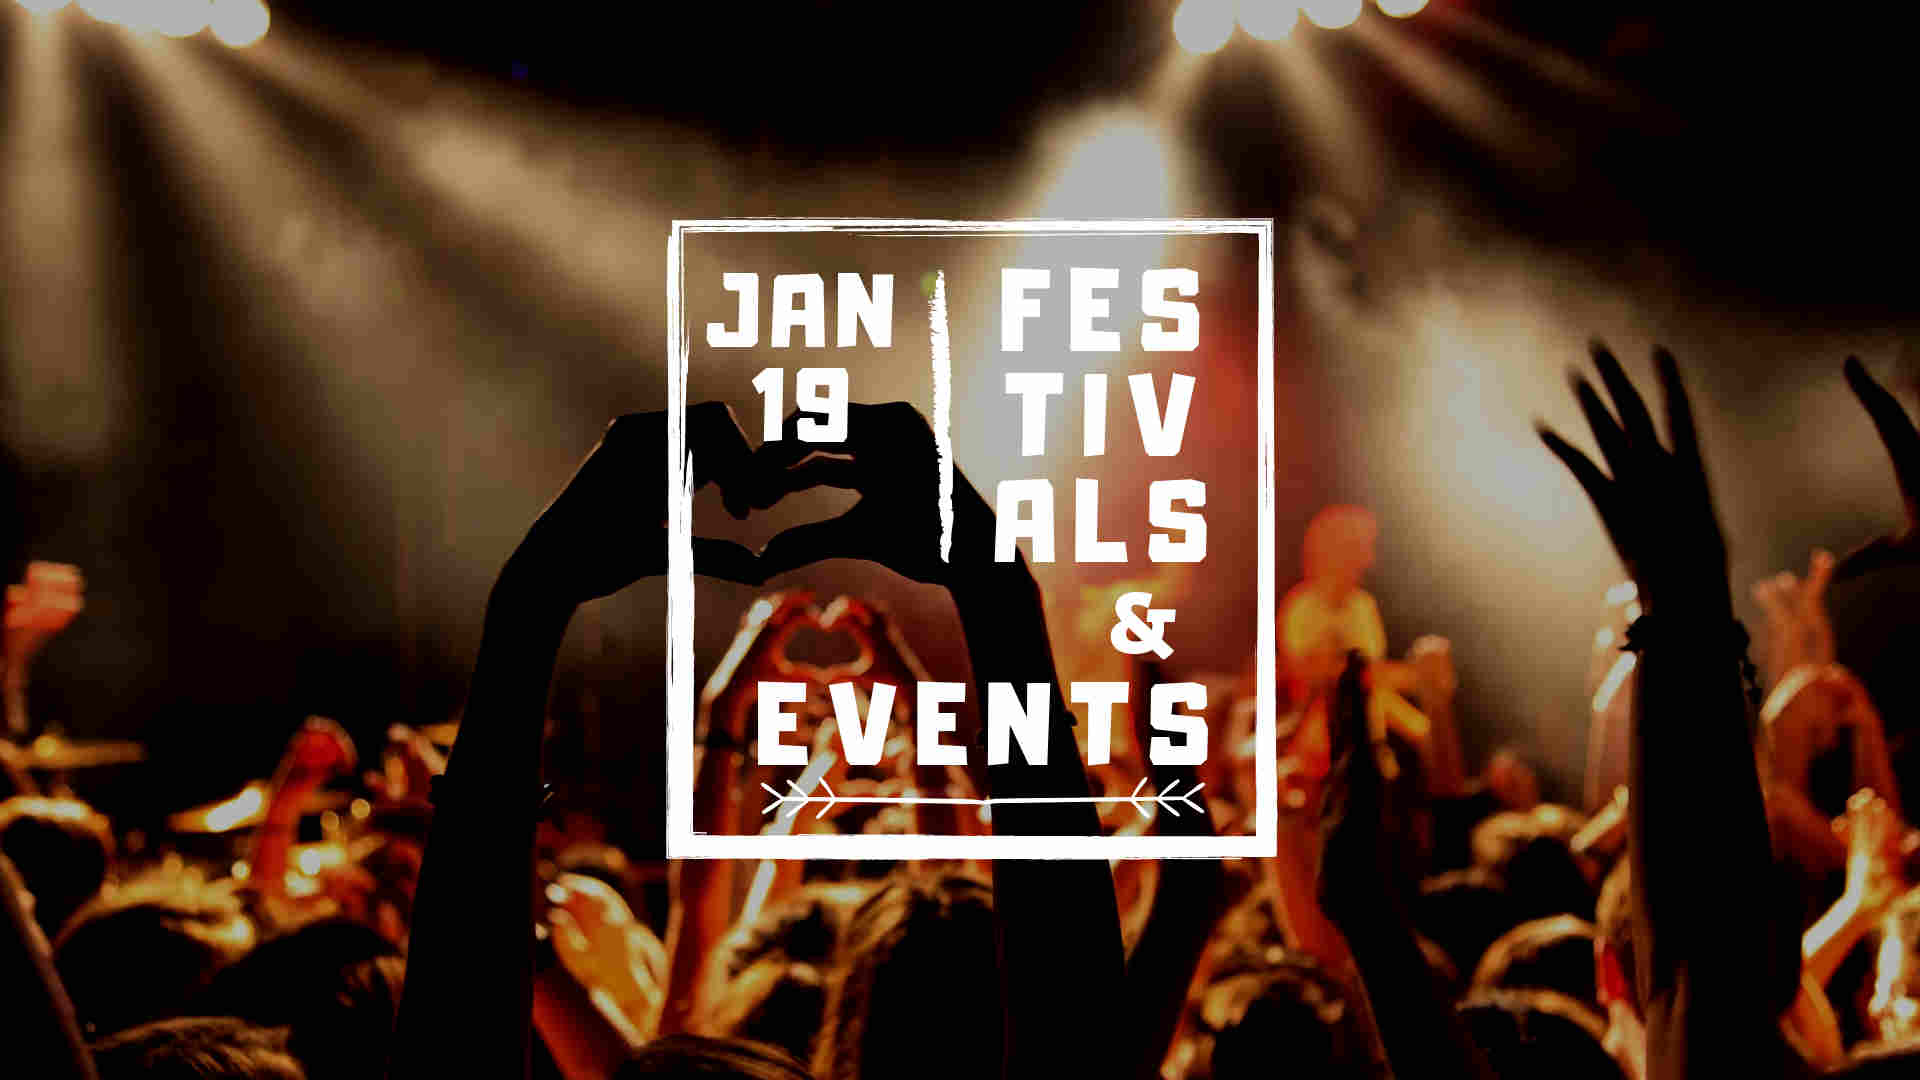 Festivals And Events In European Cities January 2019